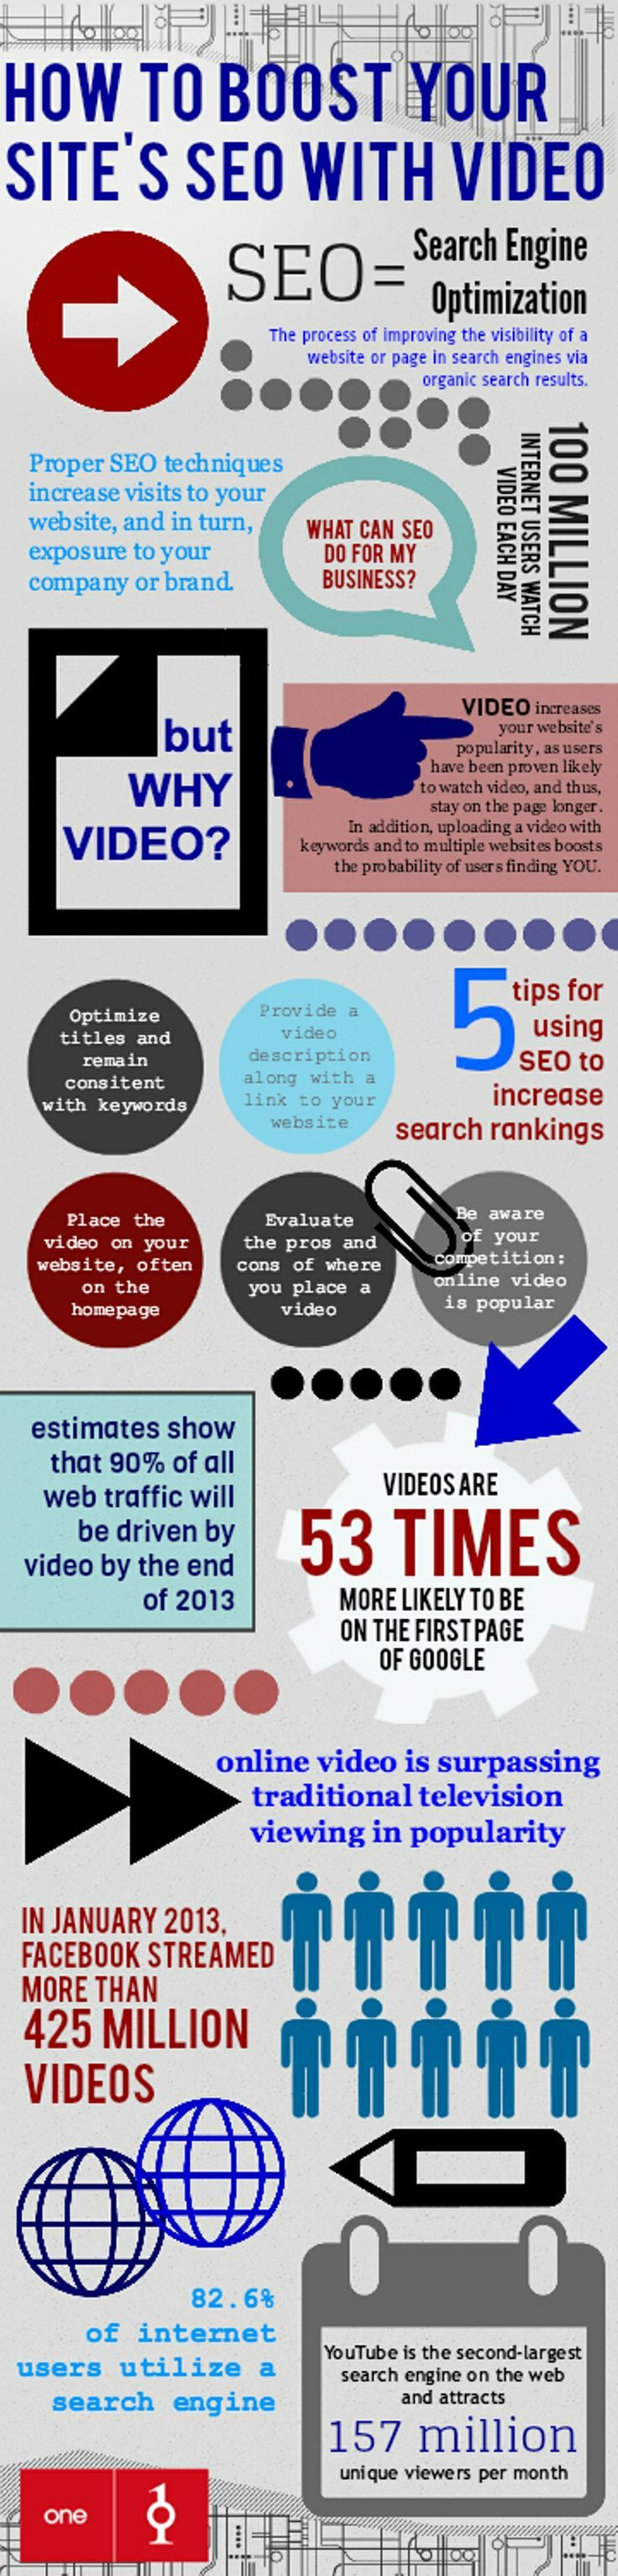 How To Boost Your Site's SEO With Video #socialmedia #SEO cc @anlsm30 #expert